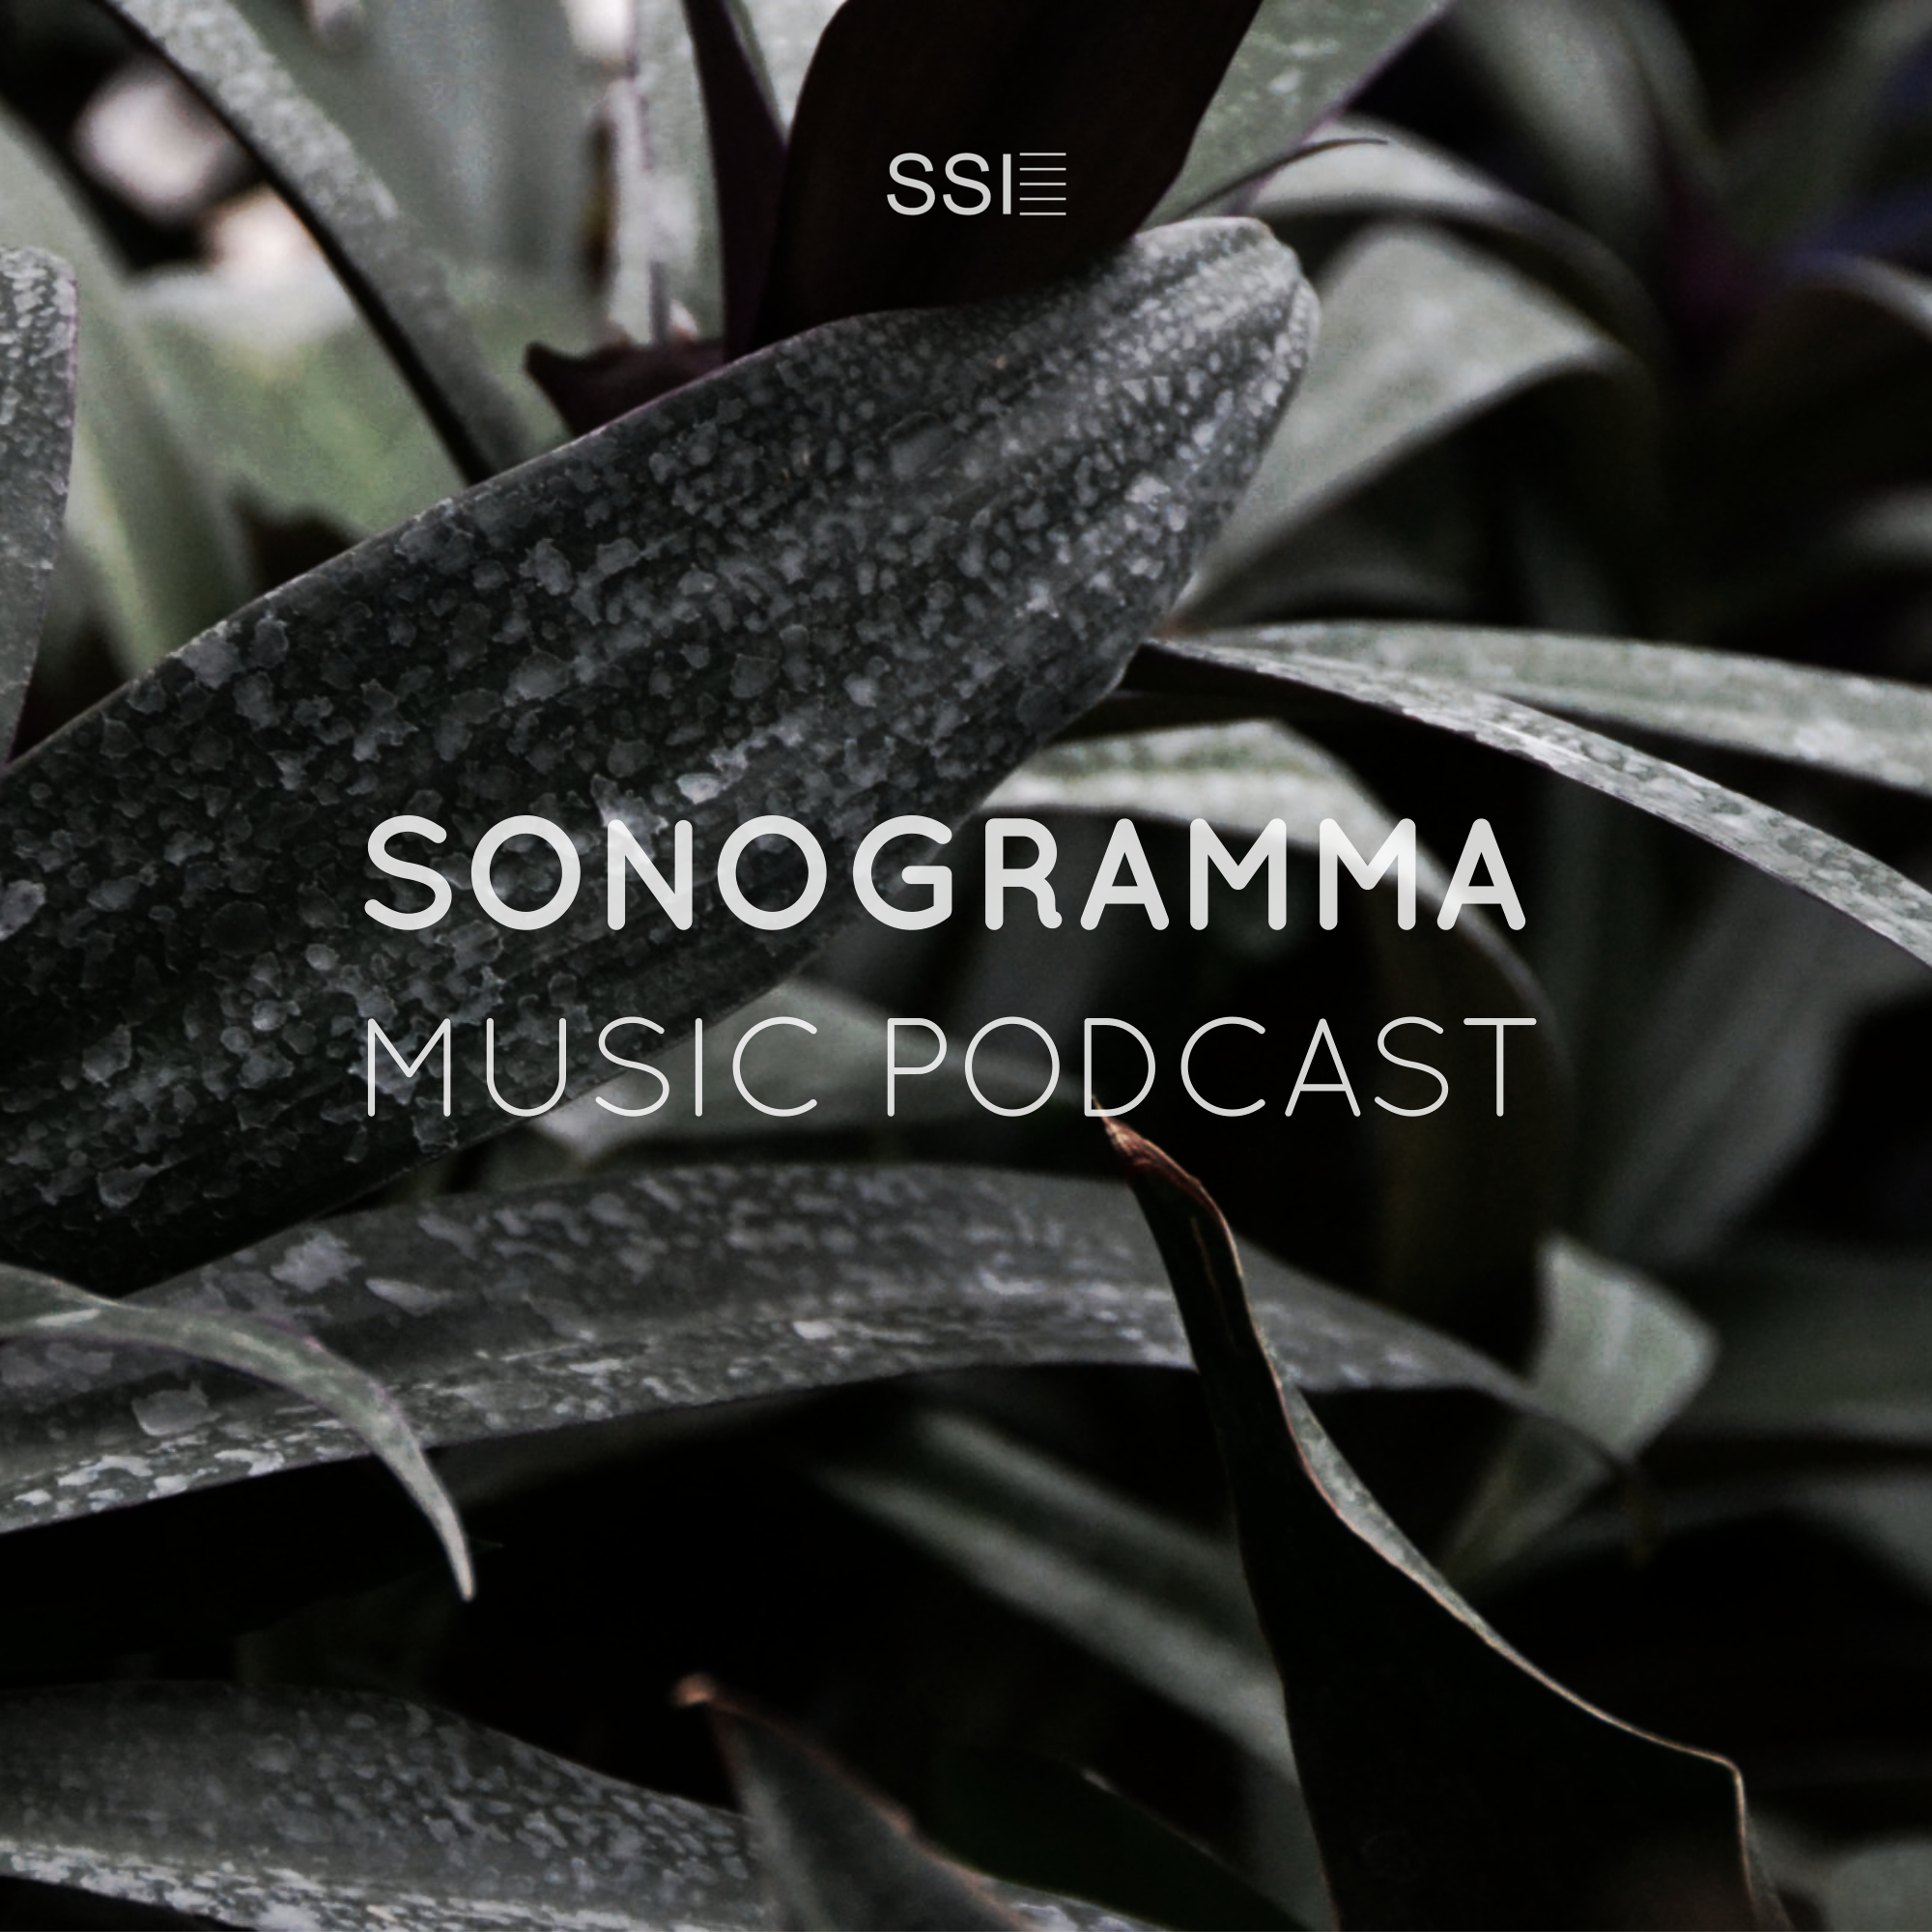 Sonogramma Music Podcast Image